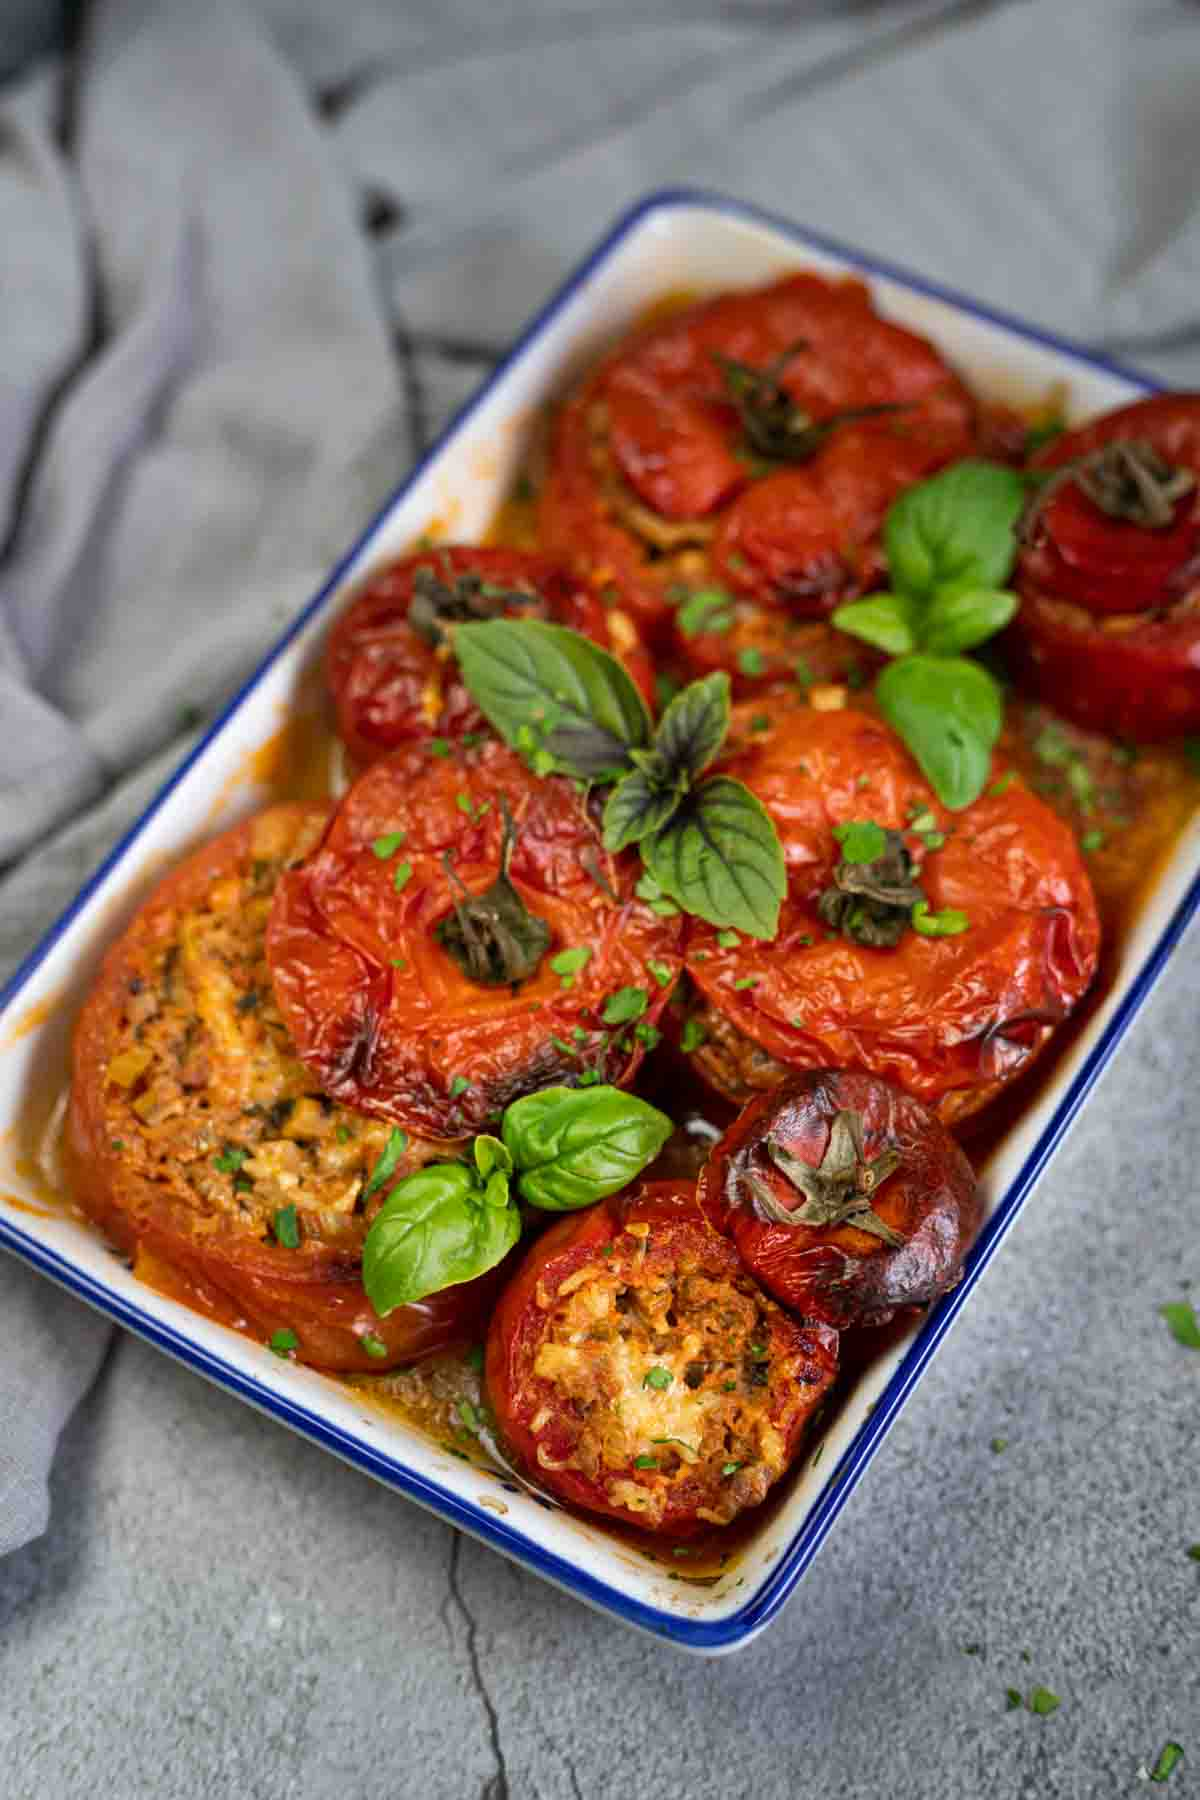 Mince Stuffed Tomatoes in the casserole dish